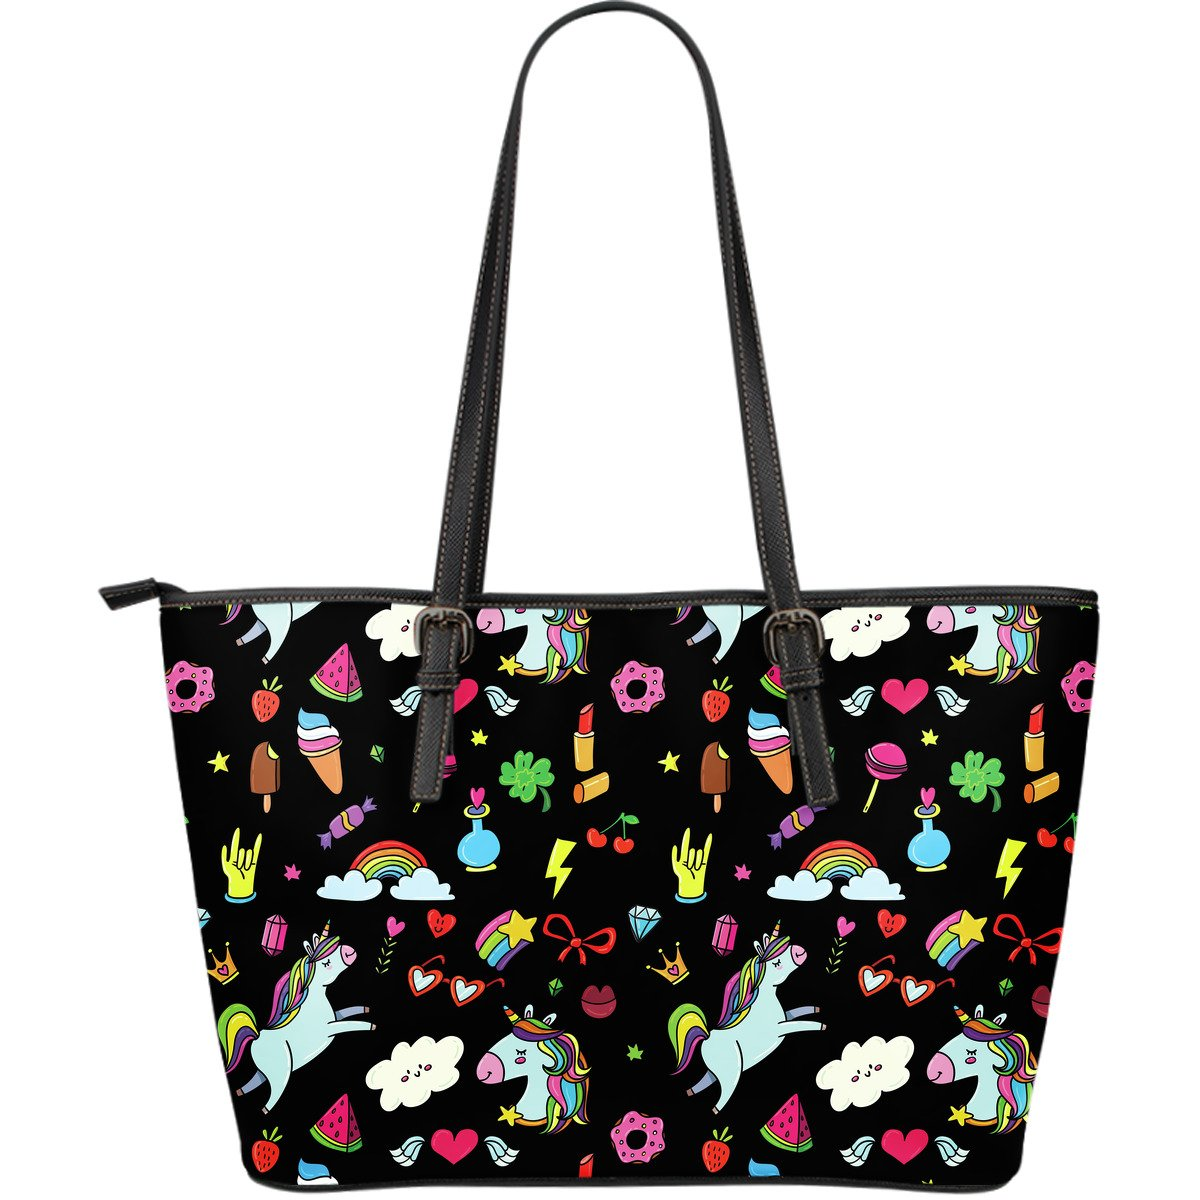 Black Girly Unicorn Pattern Print Leather Tote Bag GearFrost